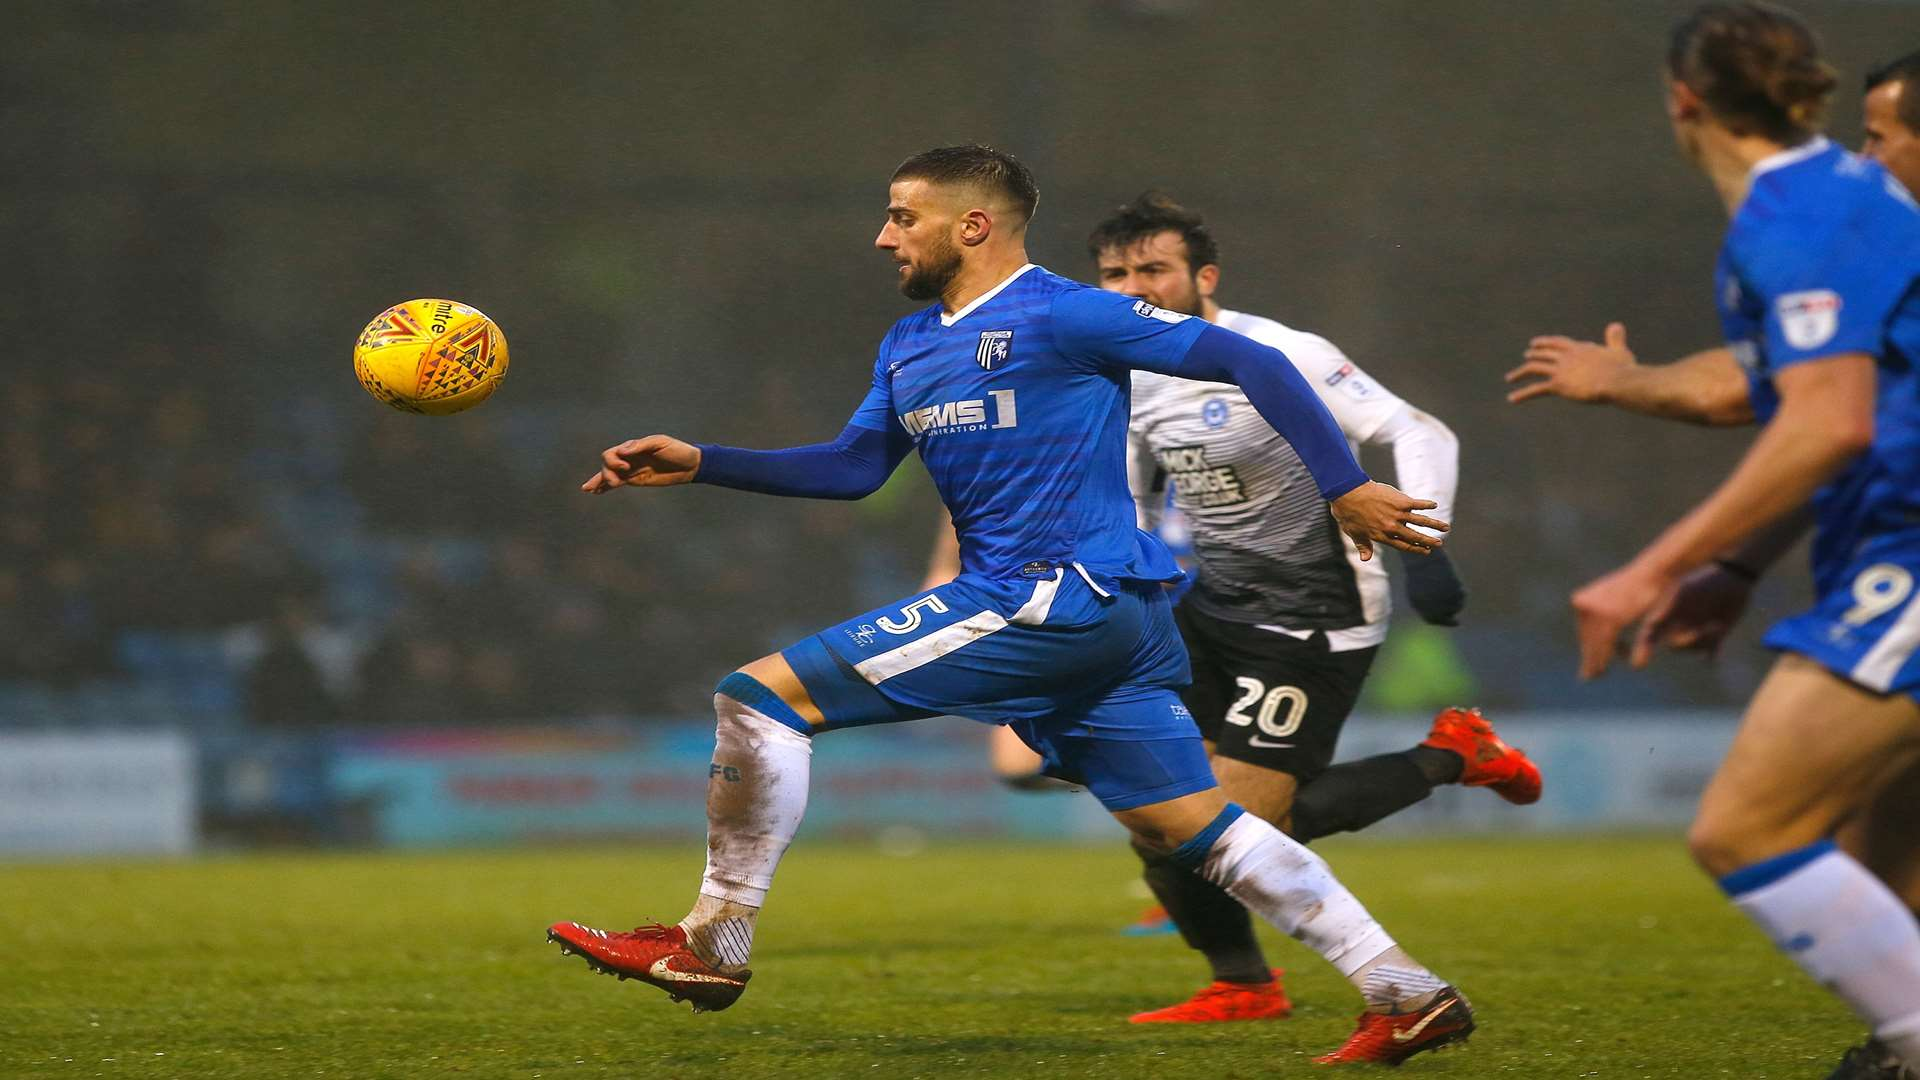 Gillingham defender Max Ehmer shapes up to fire in the equaliser. Picture: Andy Jones